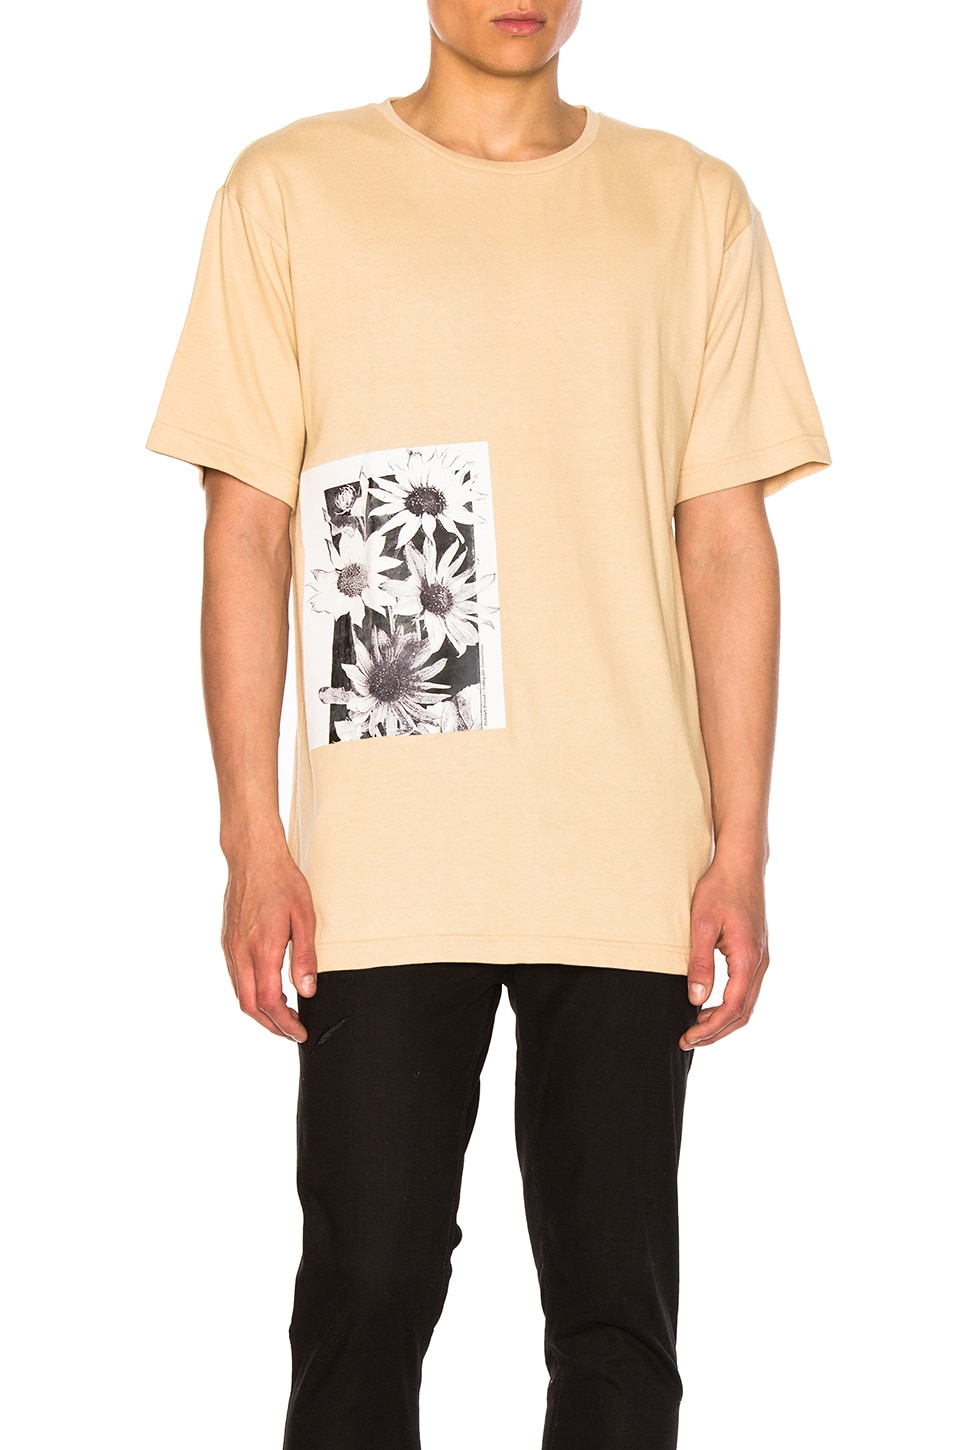 Daisy Page Tee by Publish